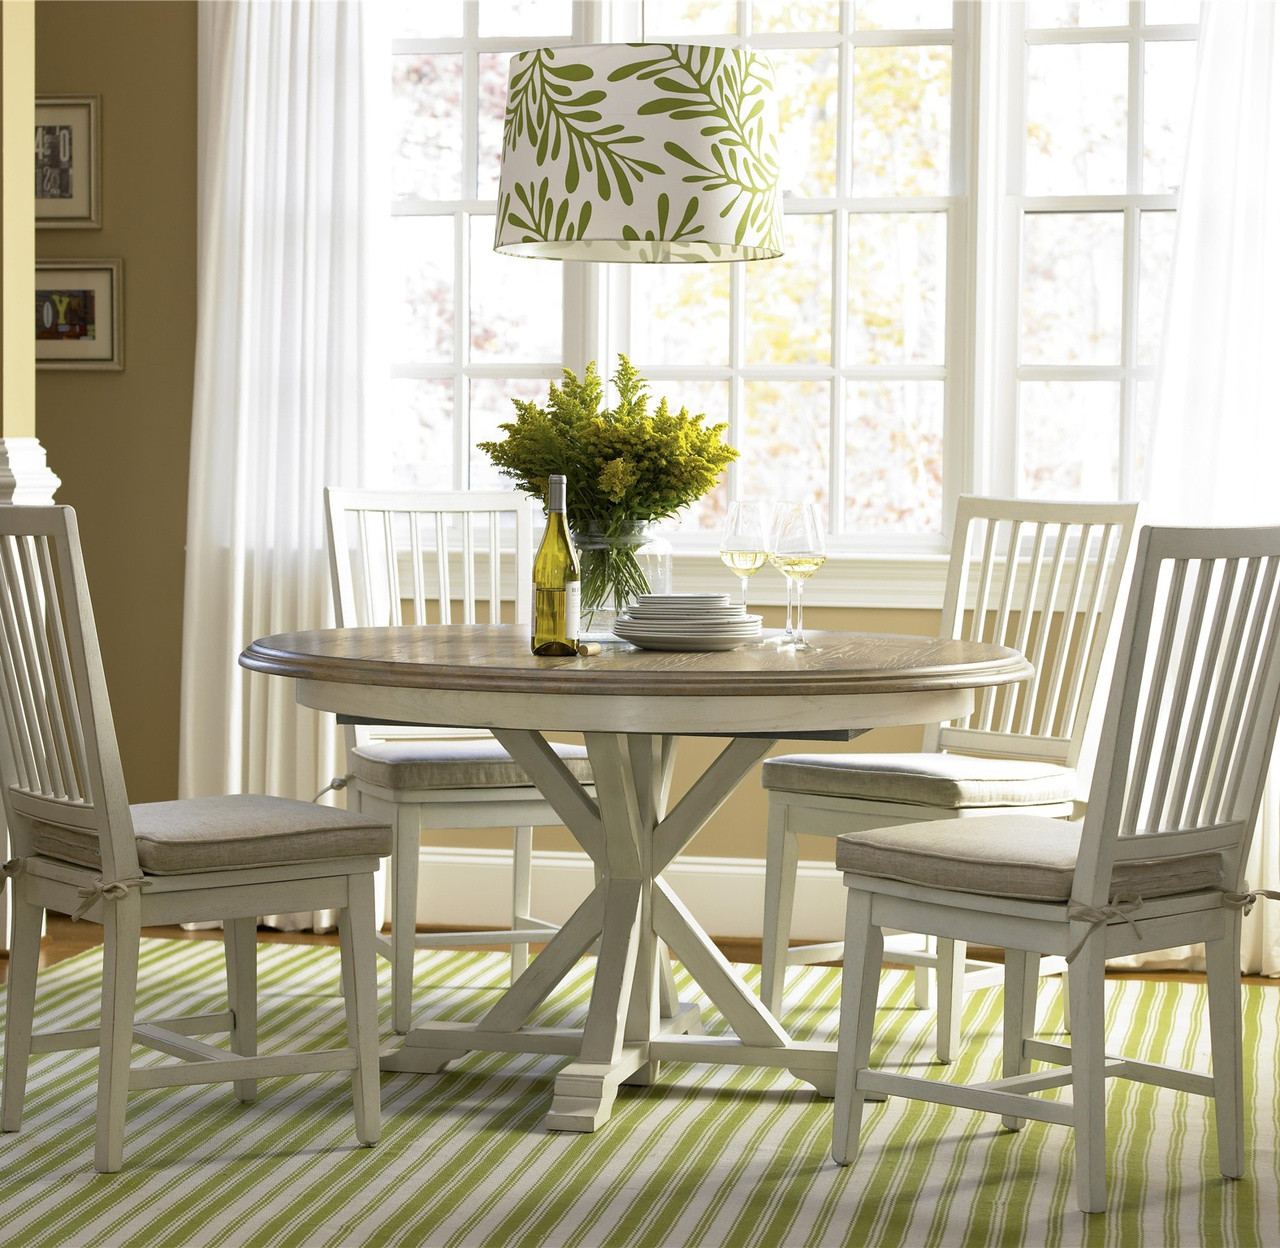 Coastal beach white oak round dining room set